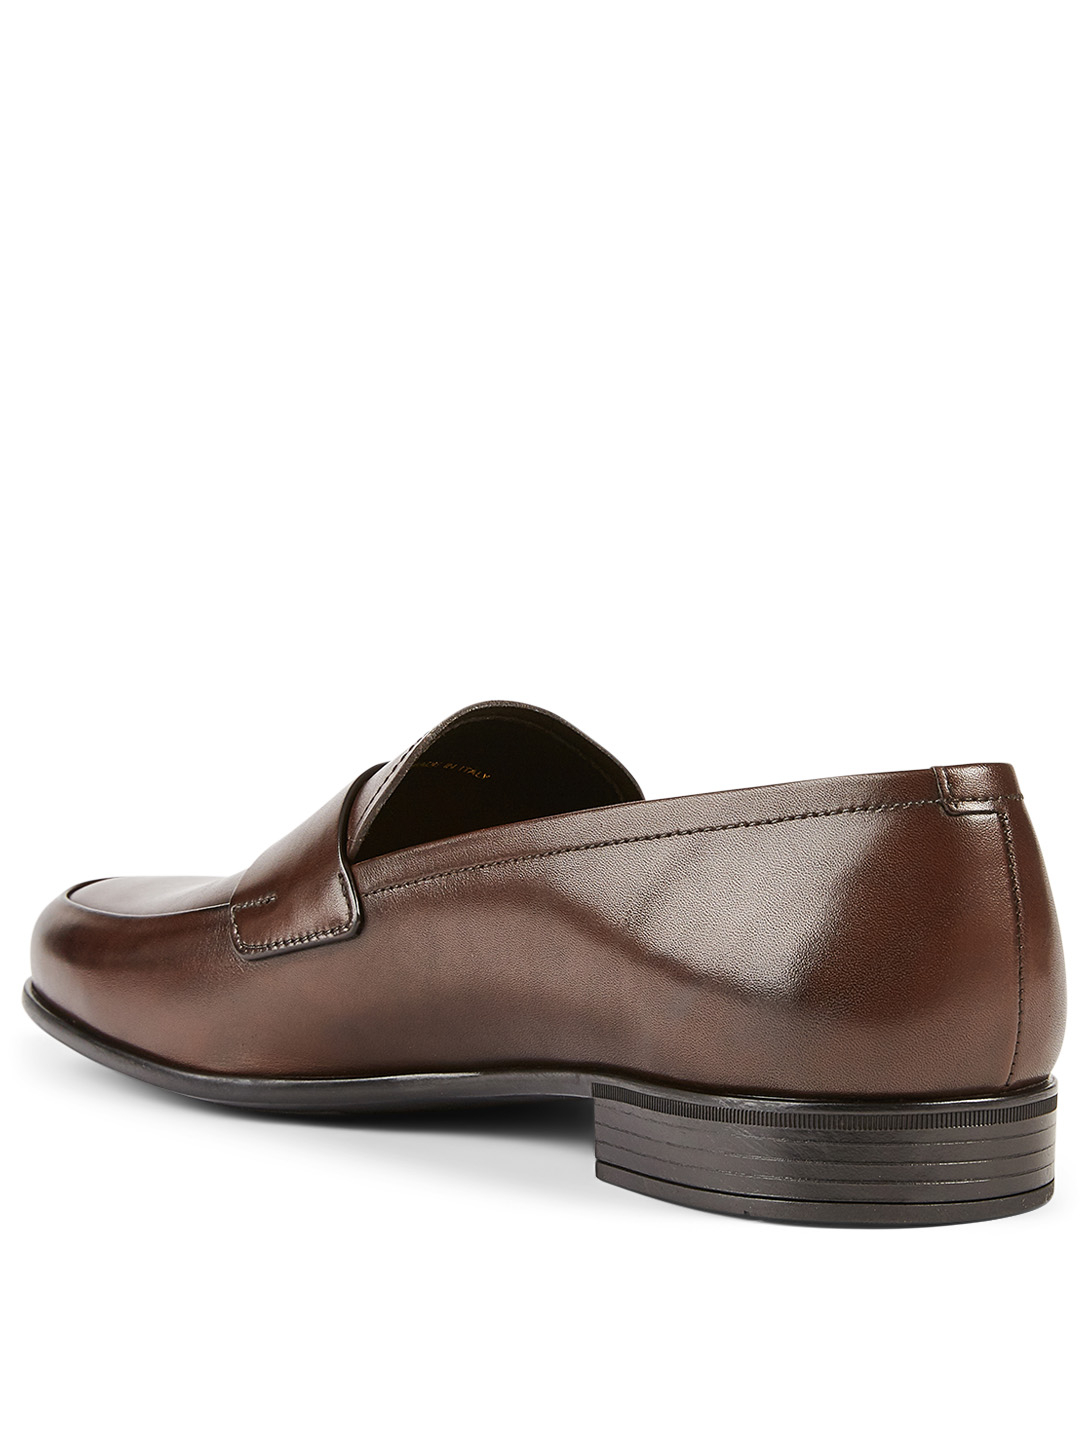 PRADA Leather Loafers Men's Brown